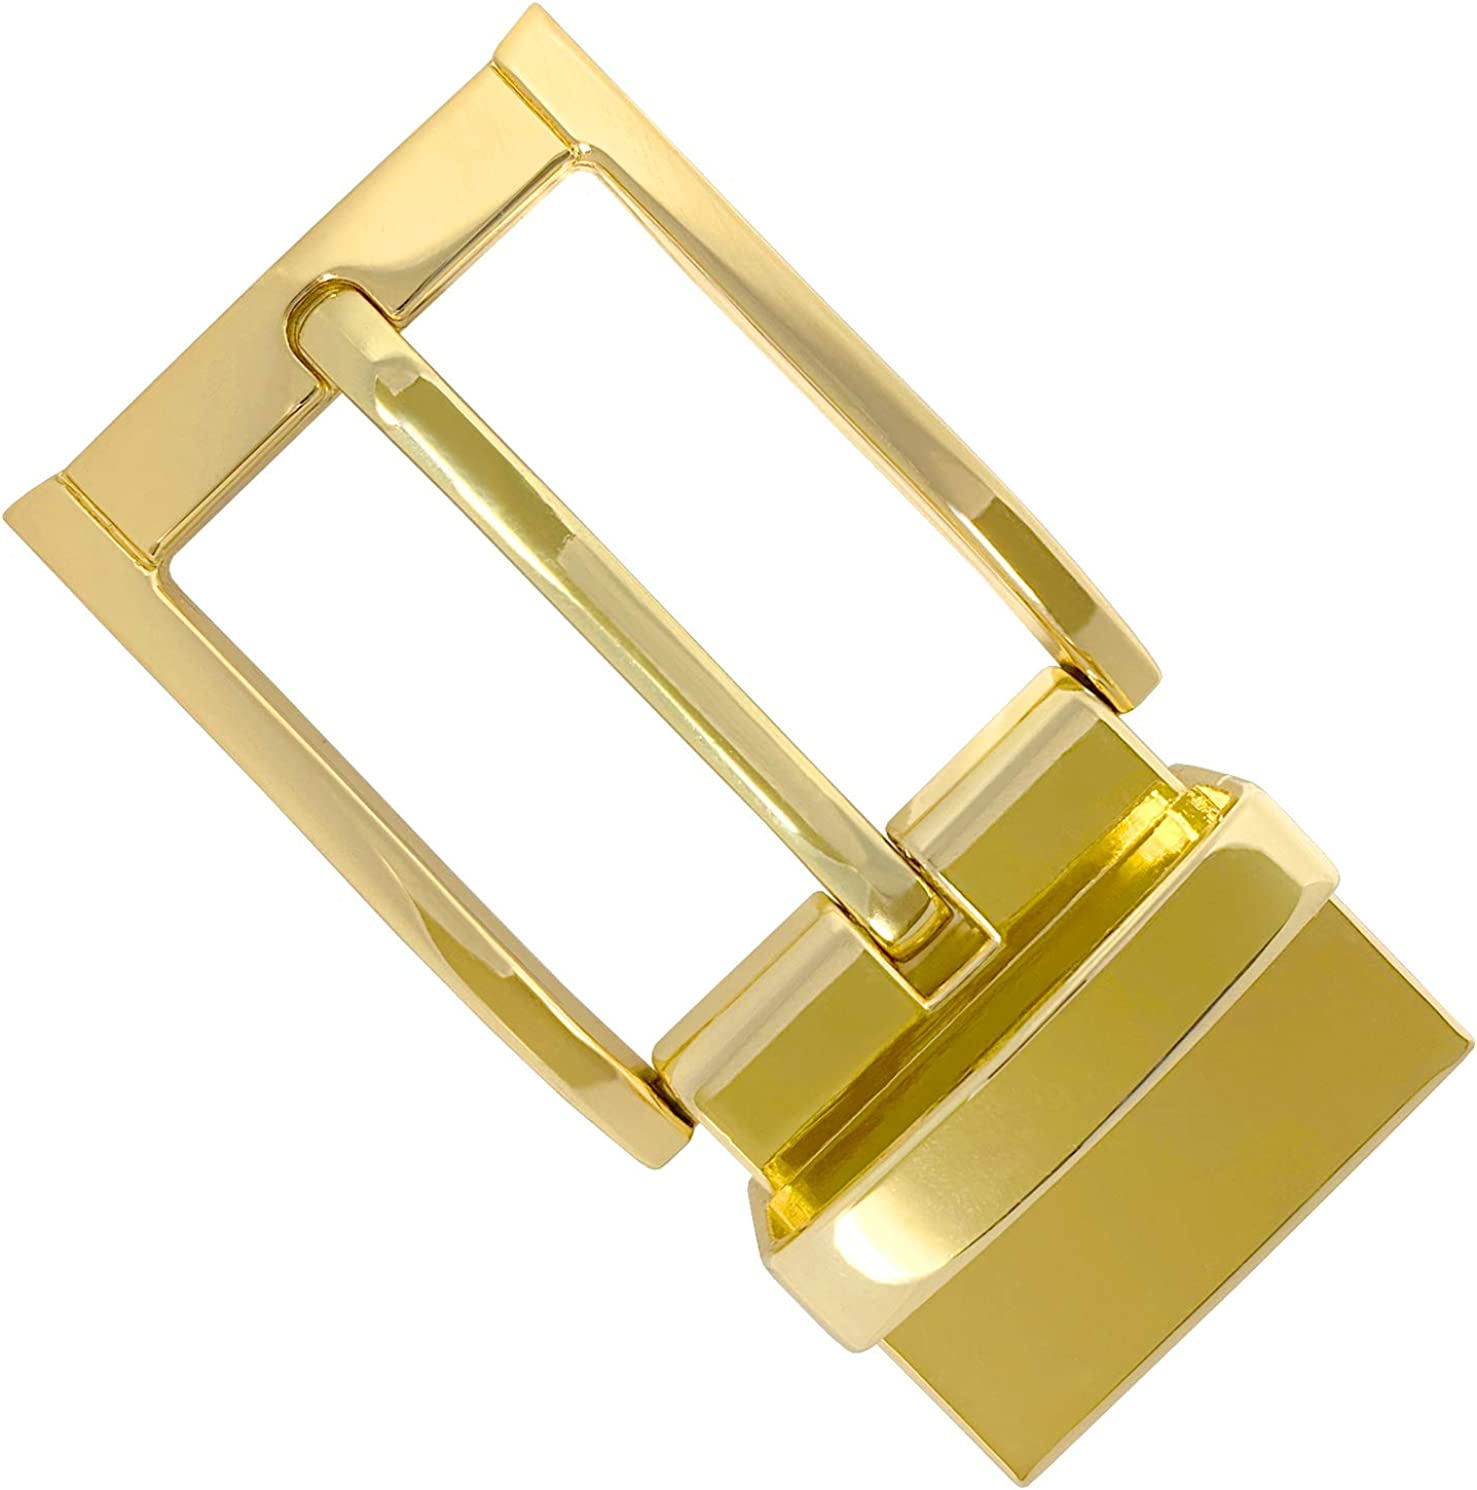 Polished Brass Belt Buckle Solid for 1.5 inch Wide Belt Replacement Supplies US